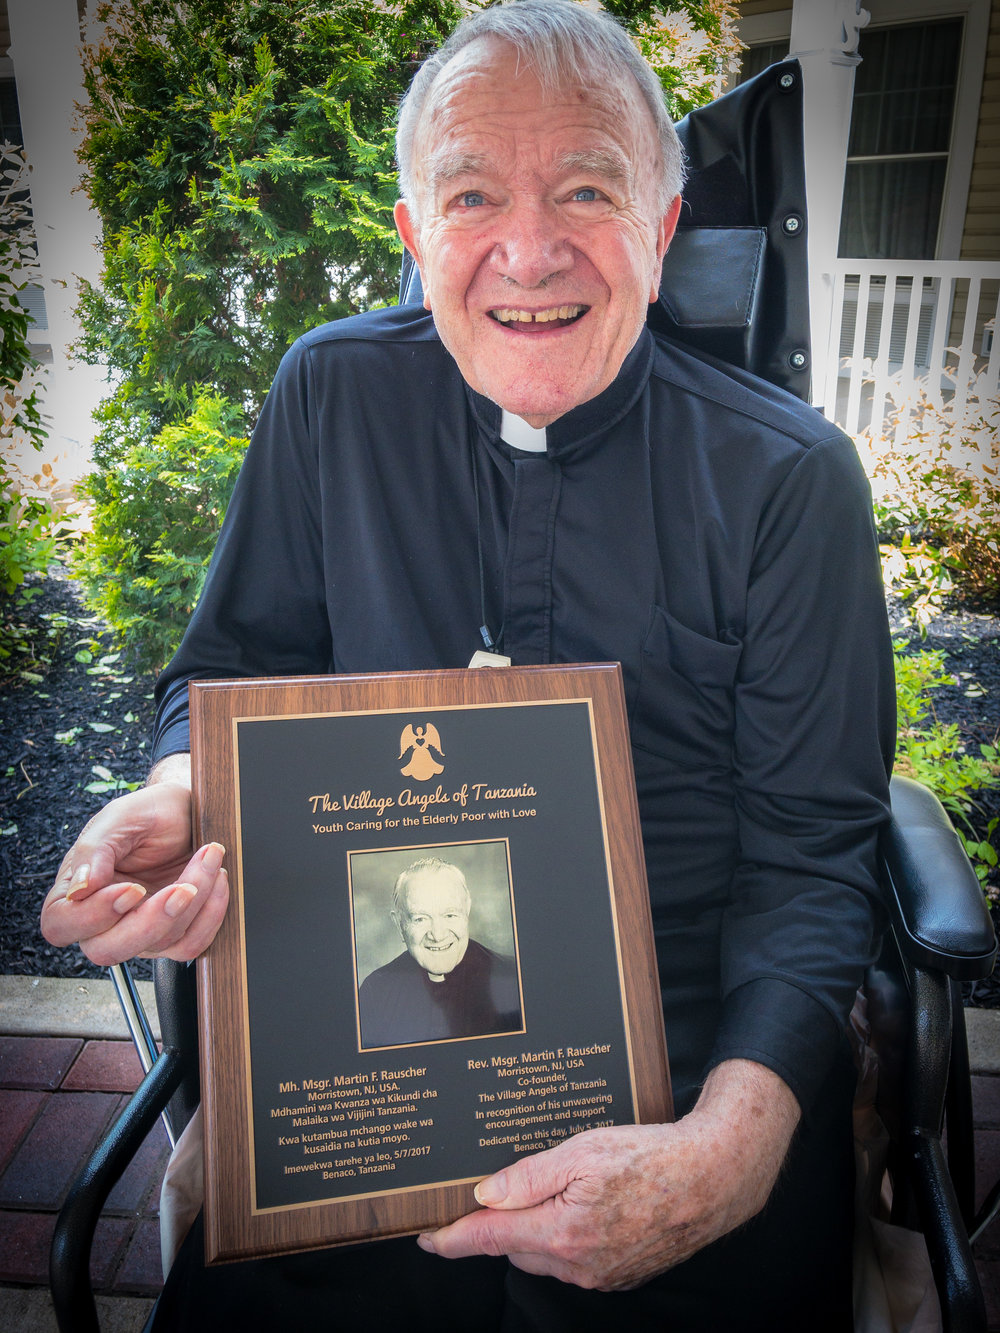 Fr. Martin with the multipurpose room dedication plaque before it was brought to Tanzania